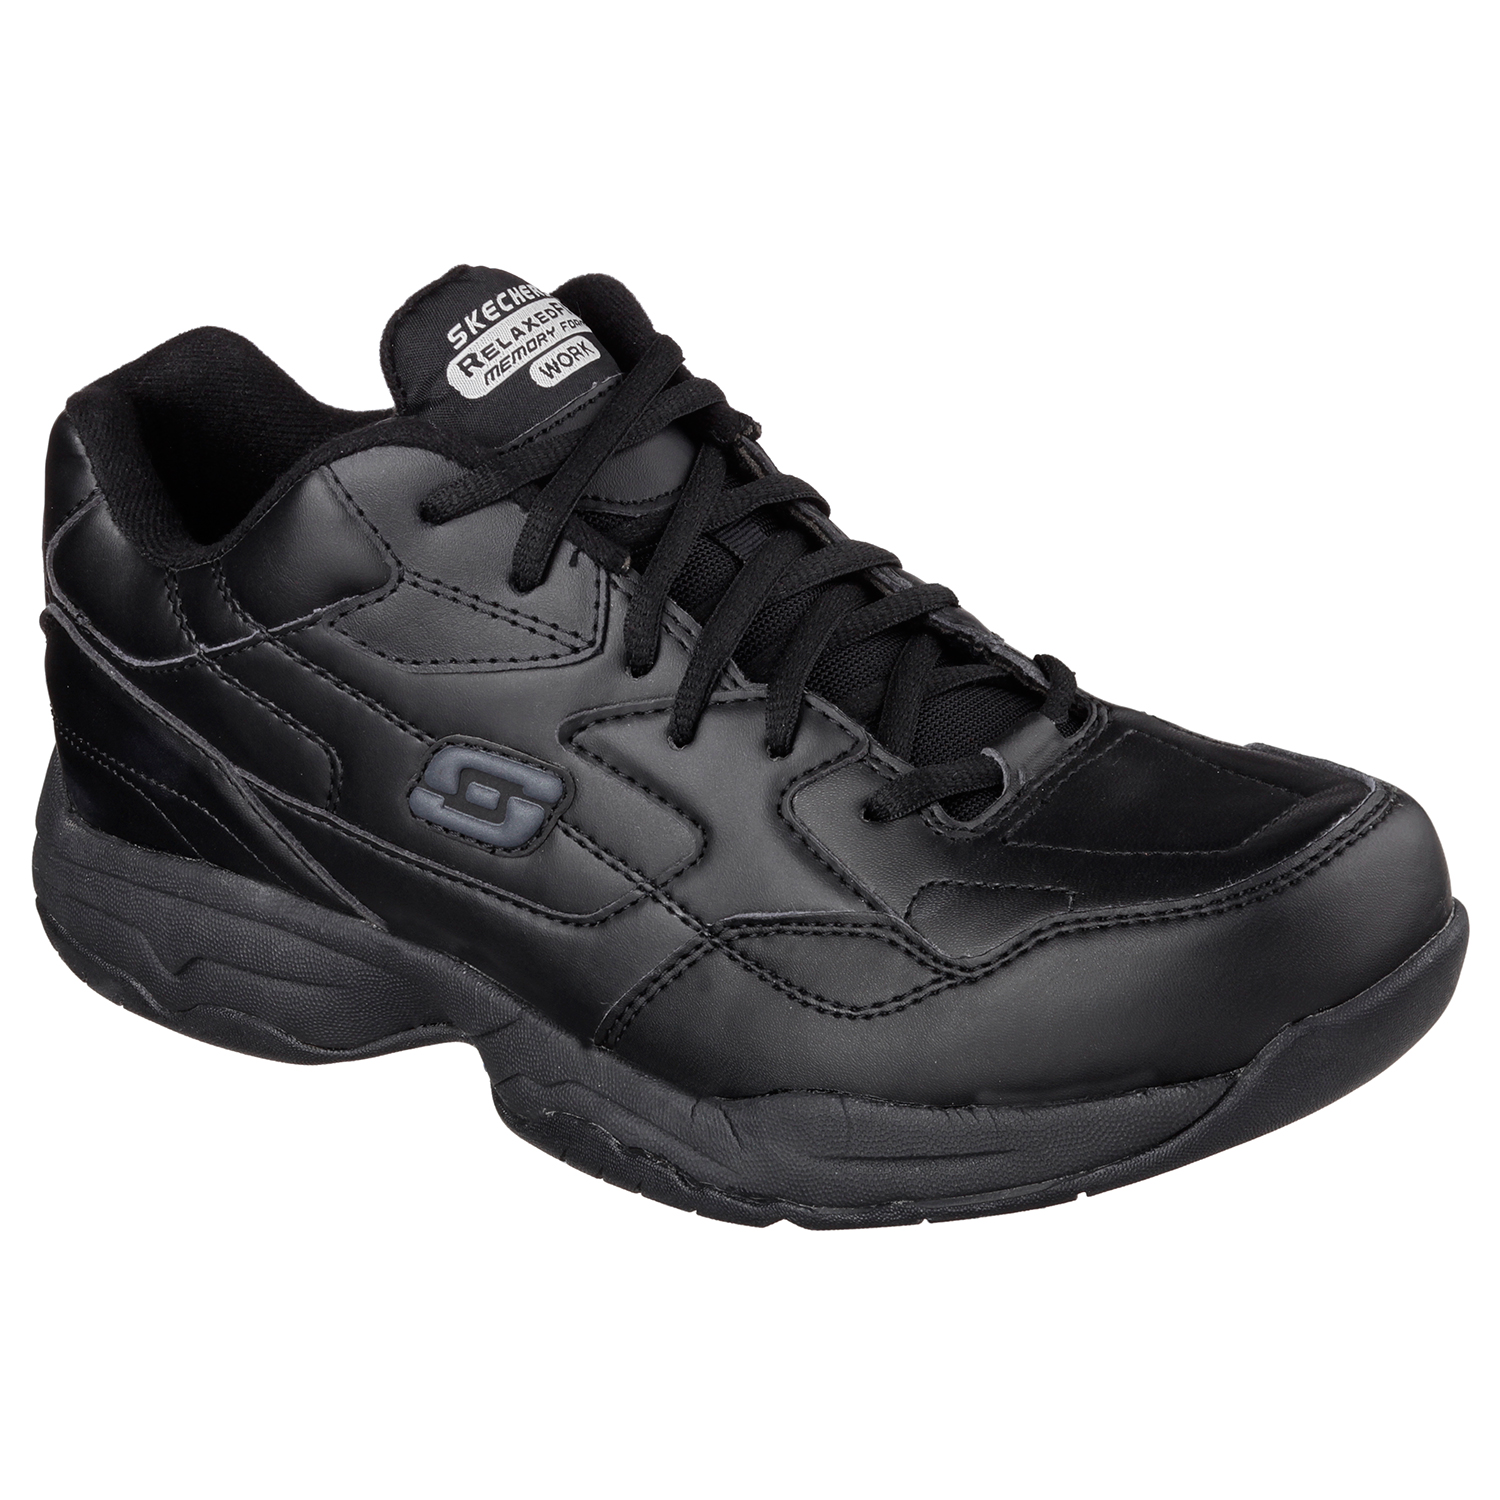 The Best Kitchen Work Shoes